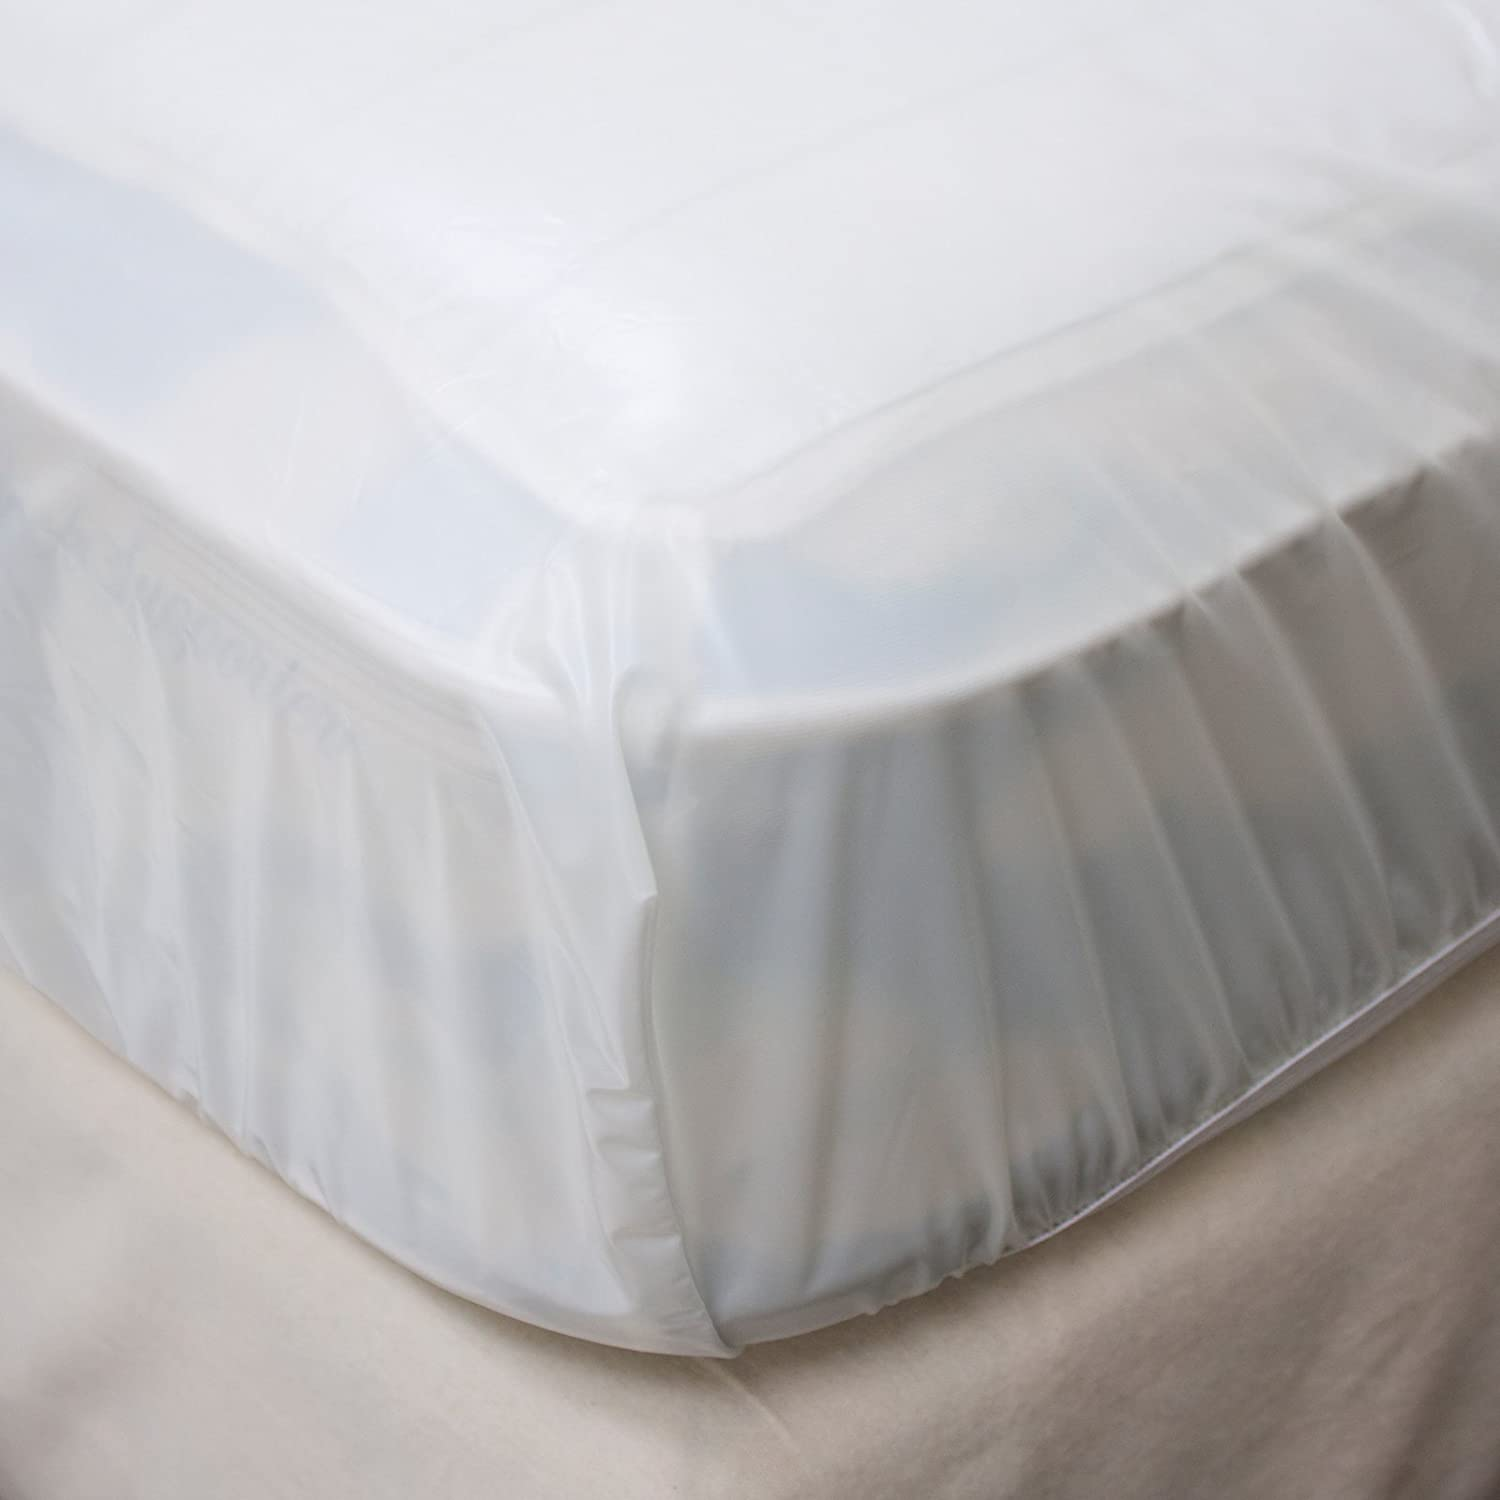 pratt of organic x specialties firm mattress retail cover beautiful photograph bag luxury moving plastic in